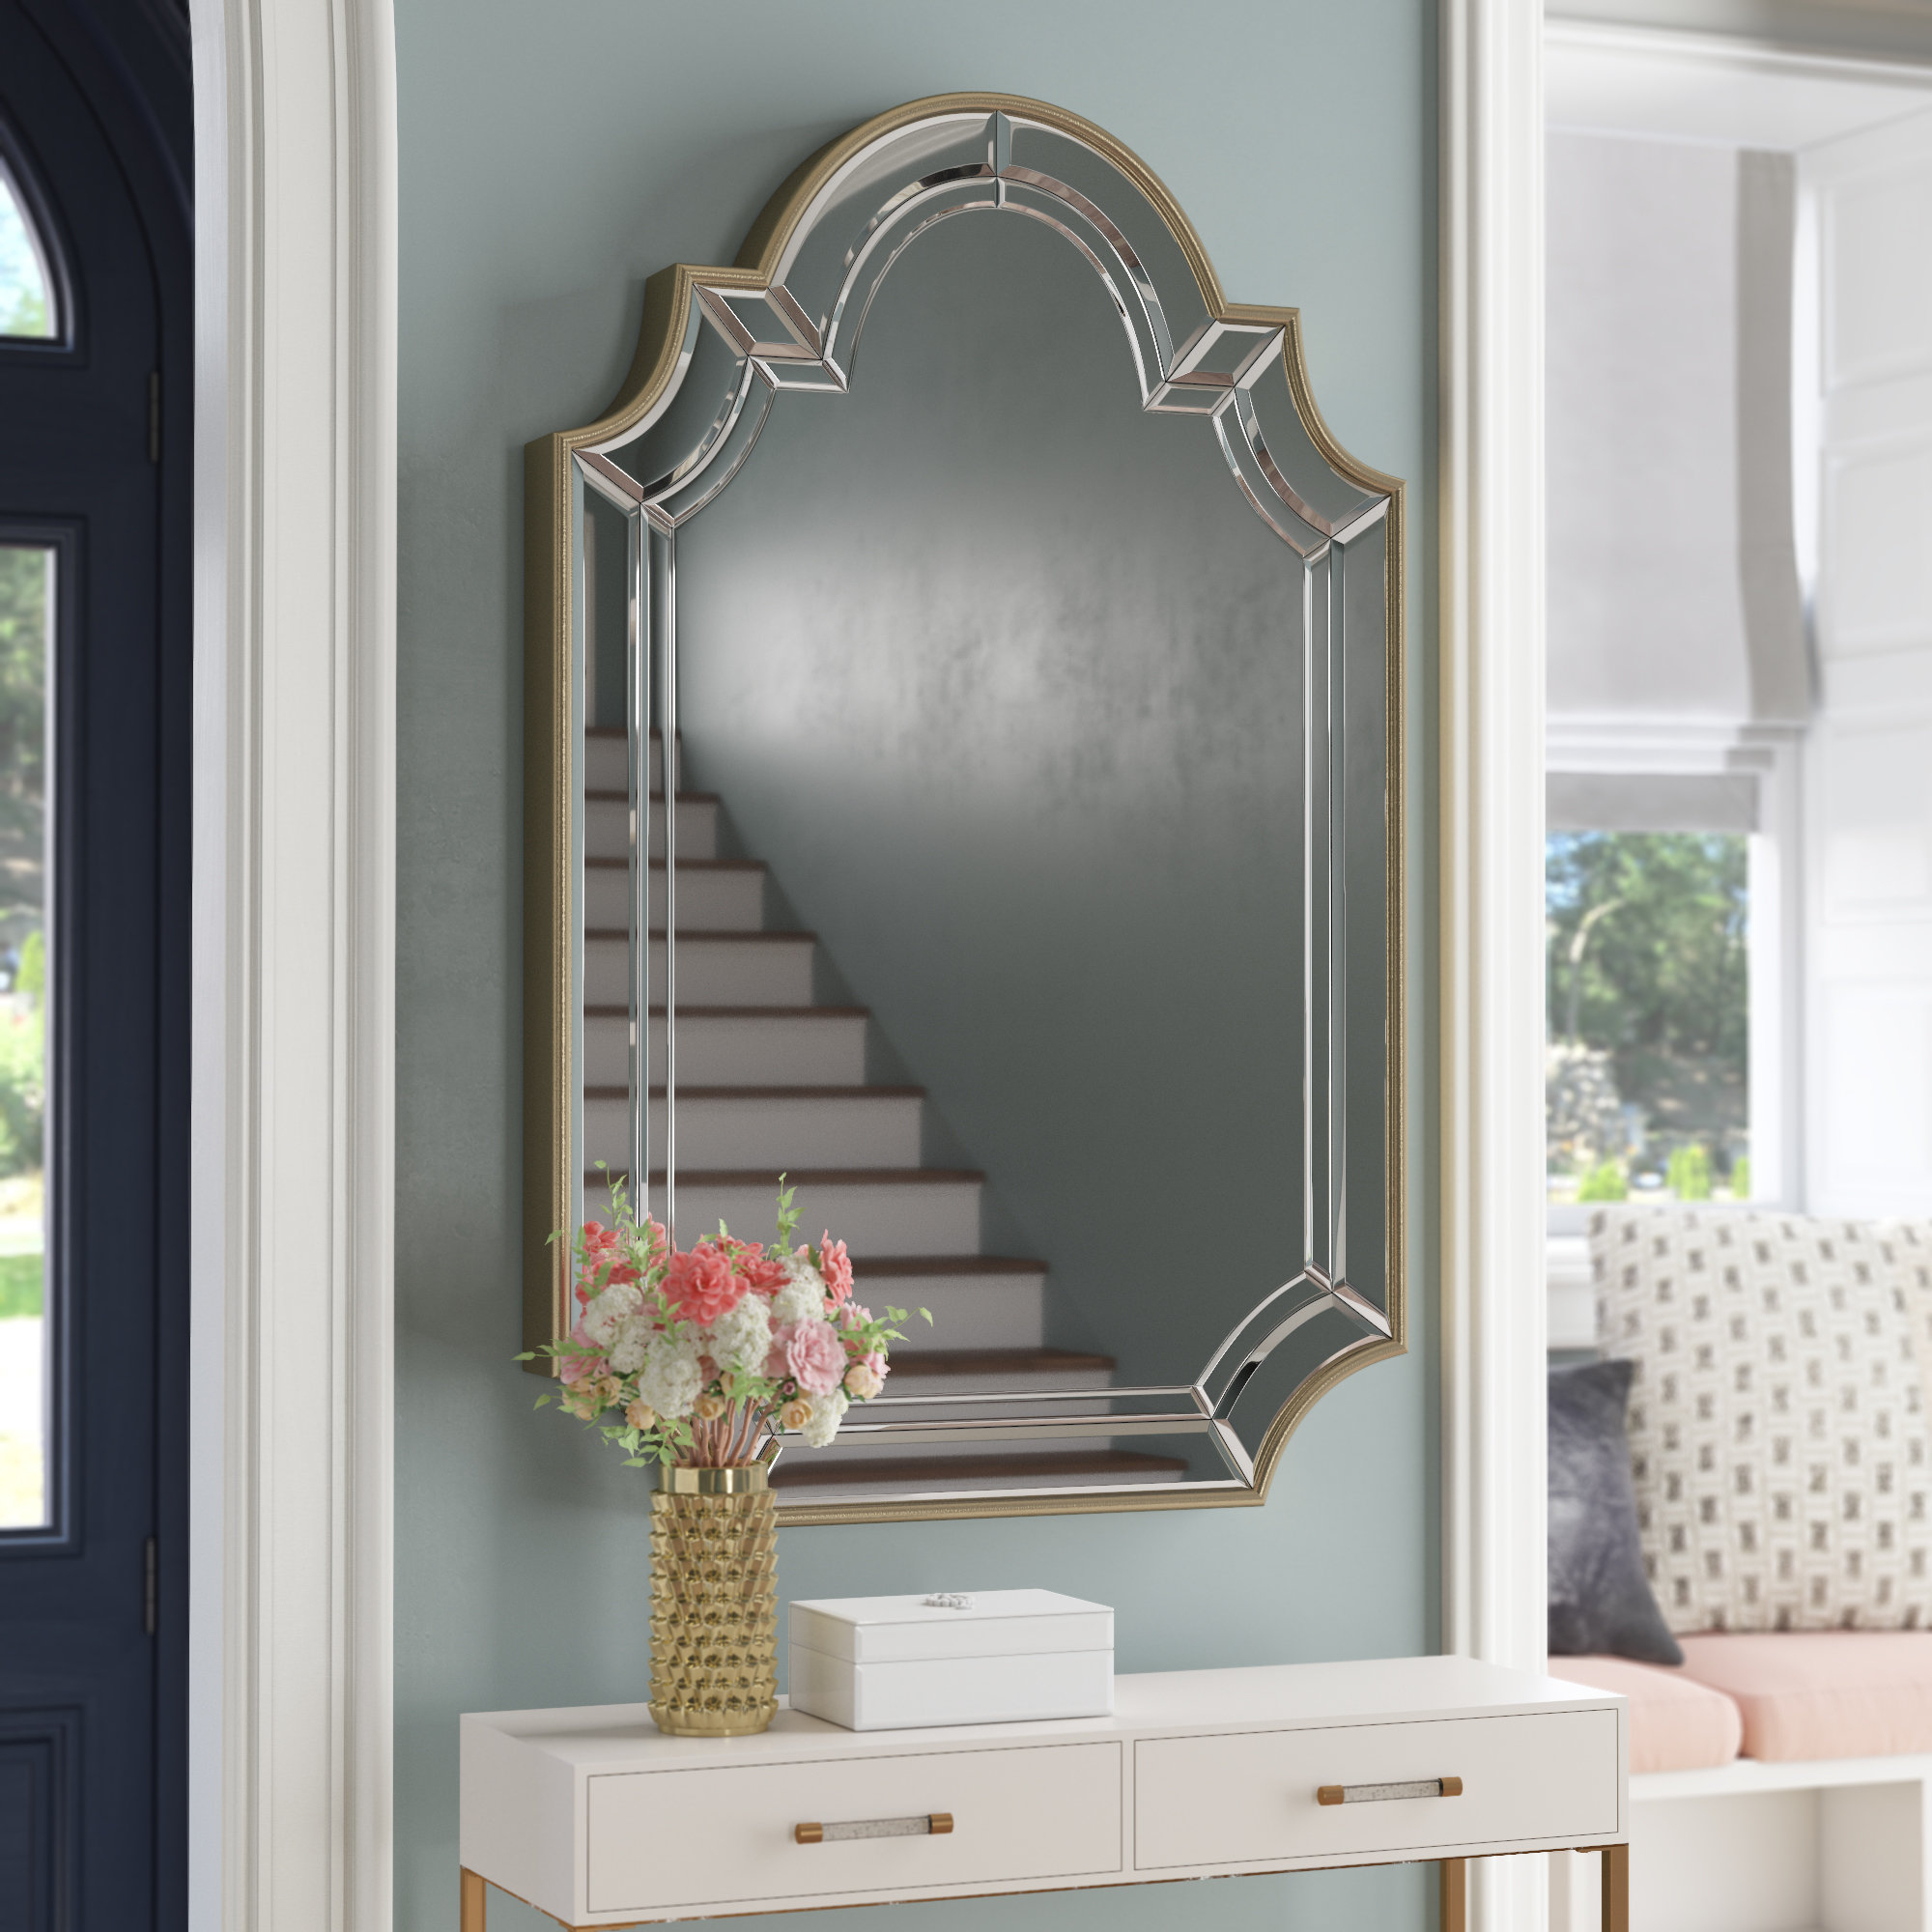 Arc Mirror | Wayfair Intended For Arch Top Vertical Wall Mirrors (Image 2 of 20)